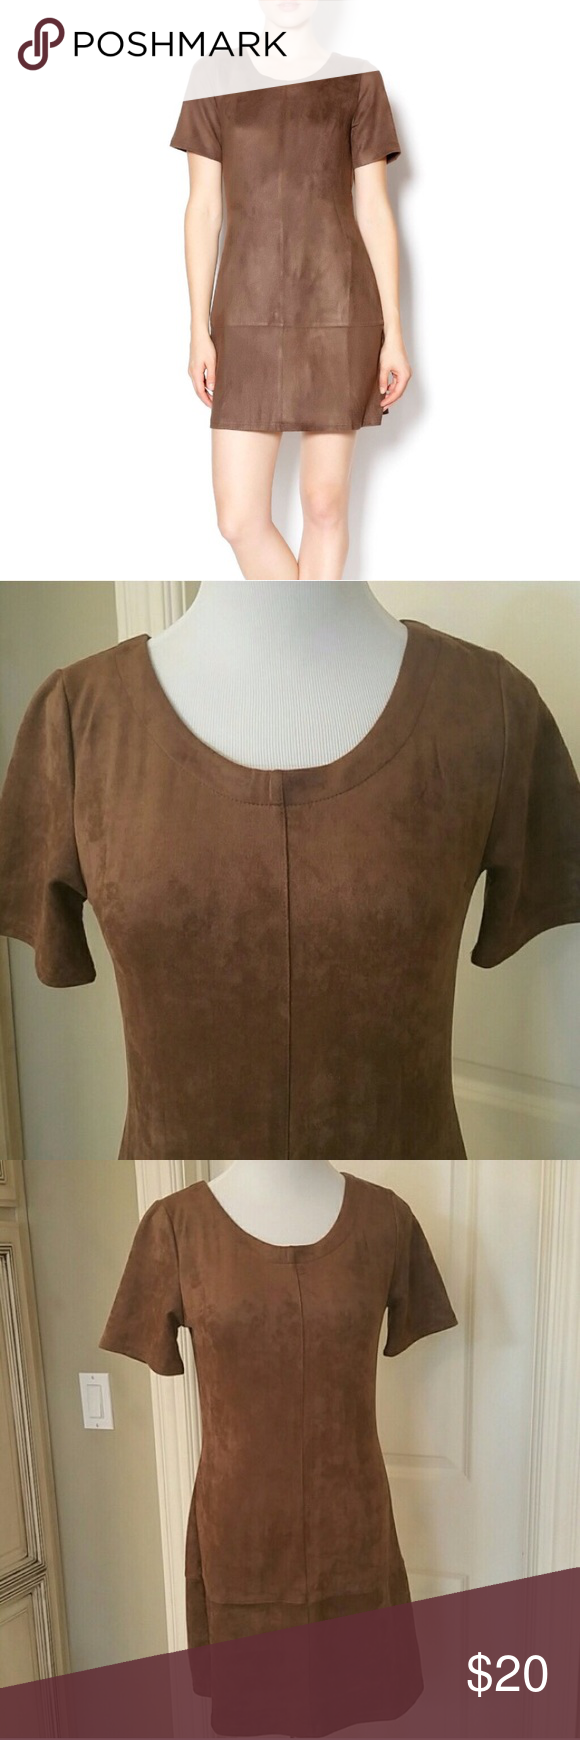 Brown suede dress Cute brown suede-like mini dress. Very soft material. Dress zips up the back. Purchased at Nordstrom. Not Zara brand. Great preloved condition. No stains or snags. Size S. Zara Dresses